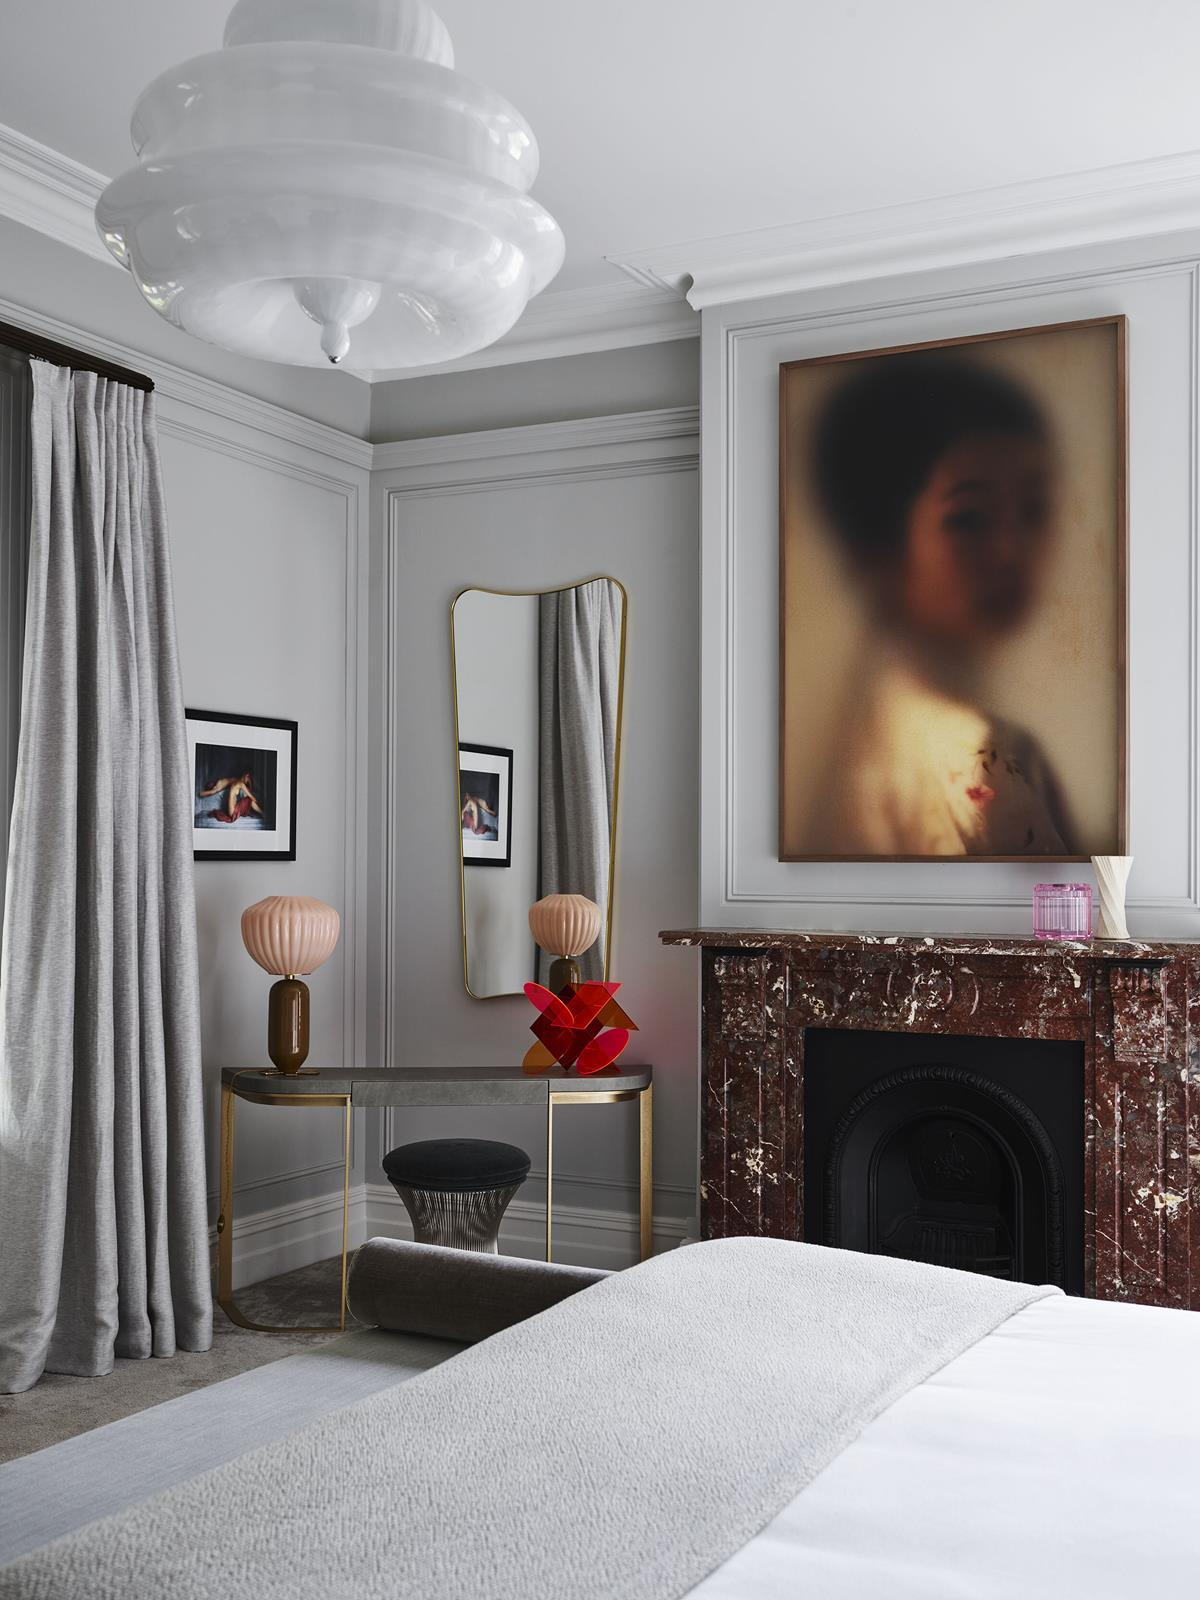 Bedroom with a marble fireplace